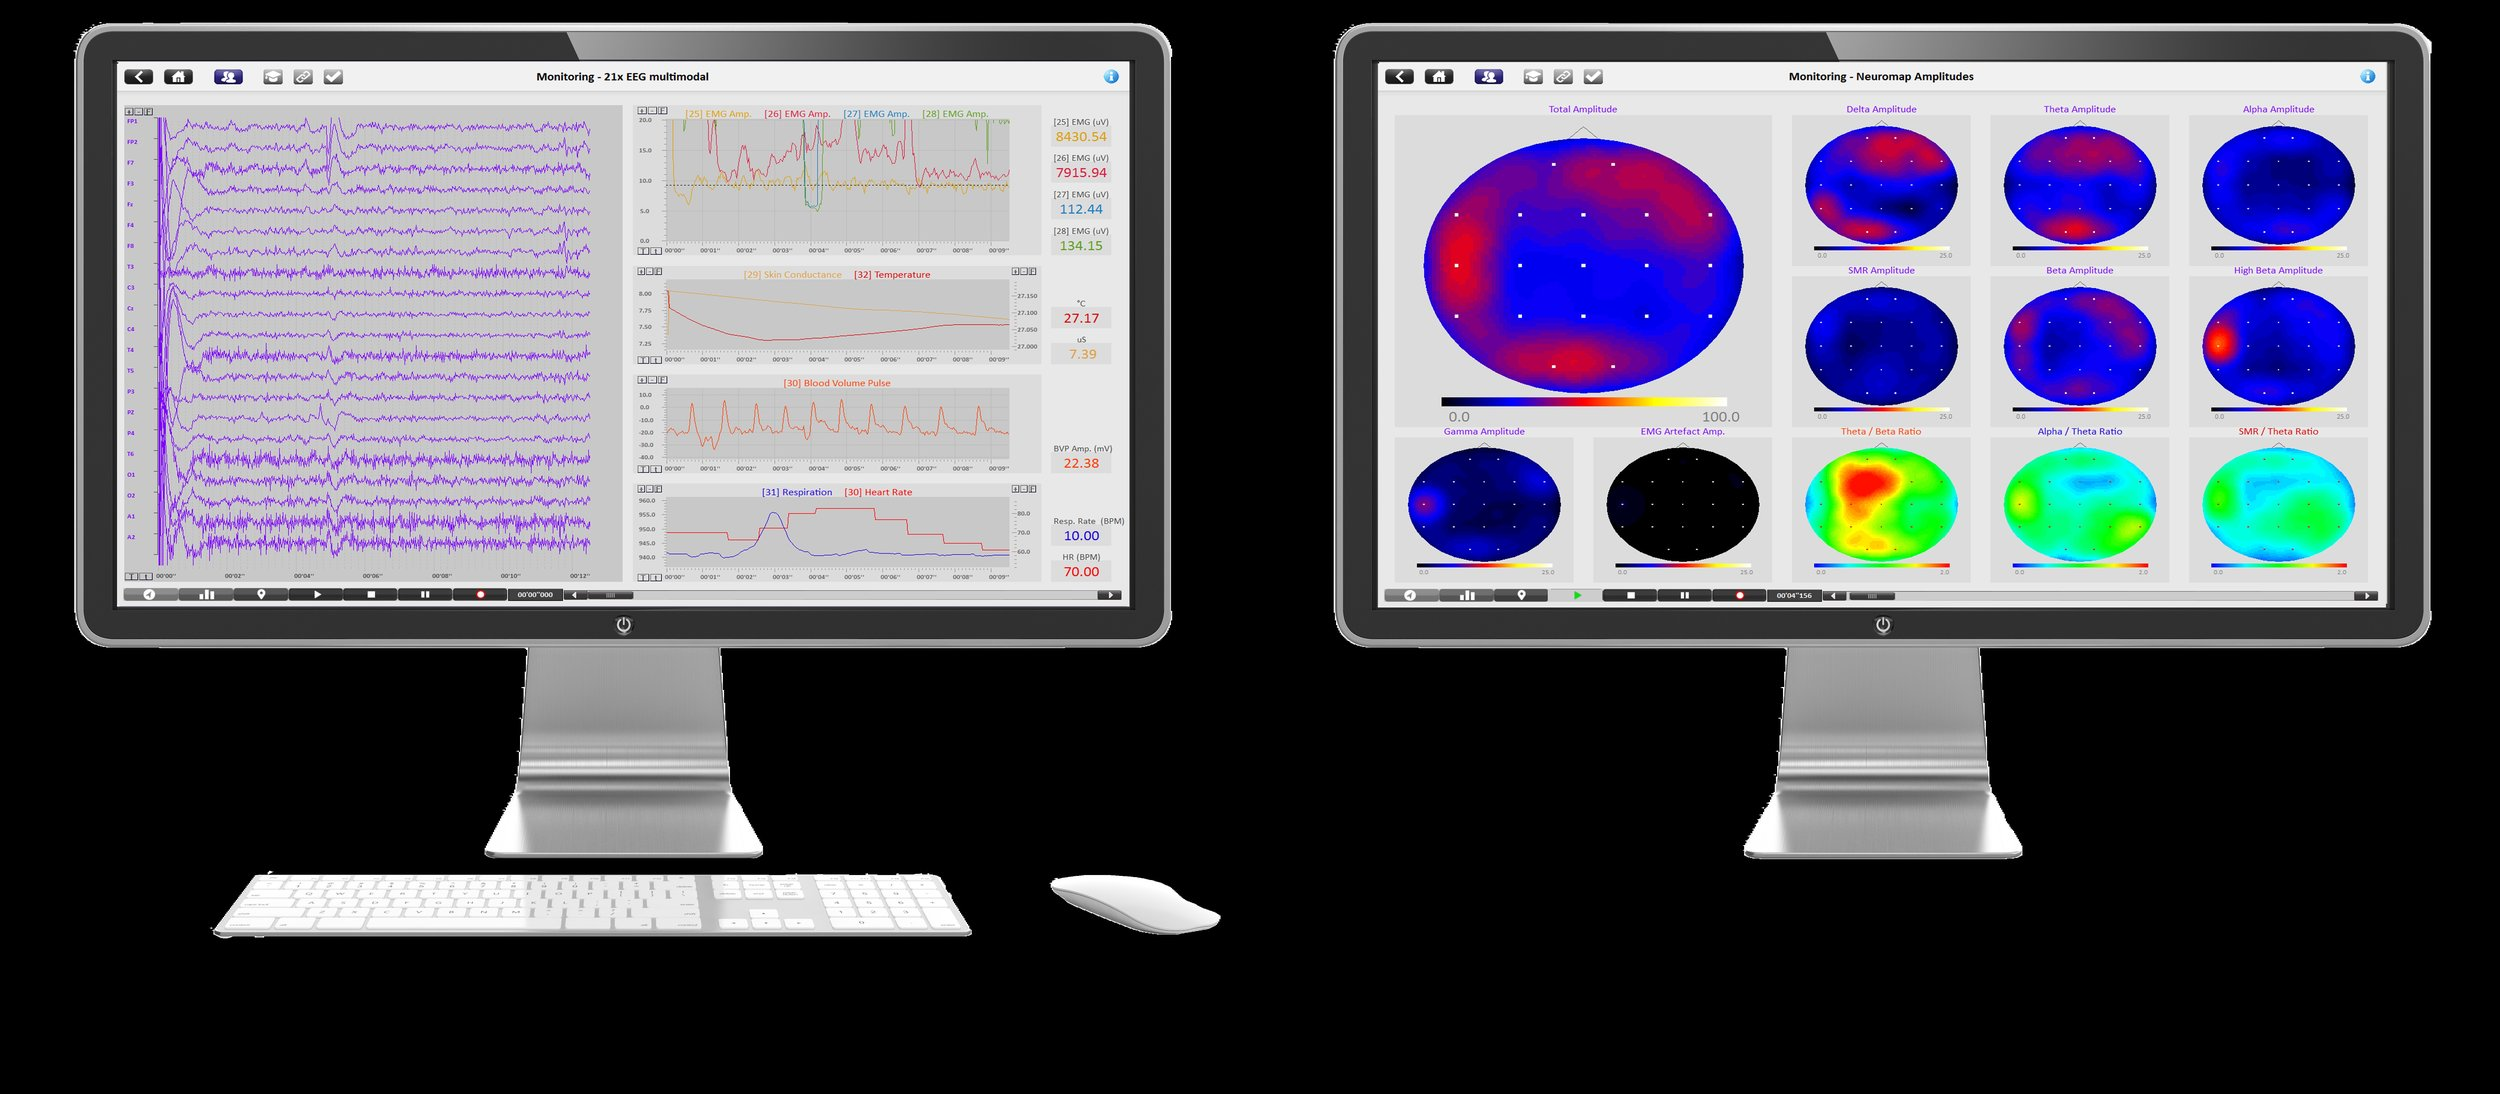 Neurofeedback has tended to rely on EEG signals and classification approaches